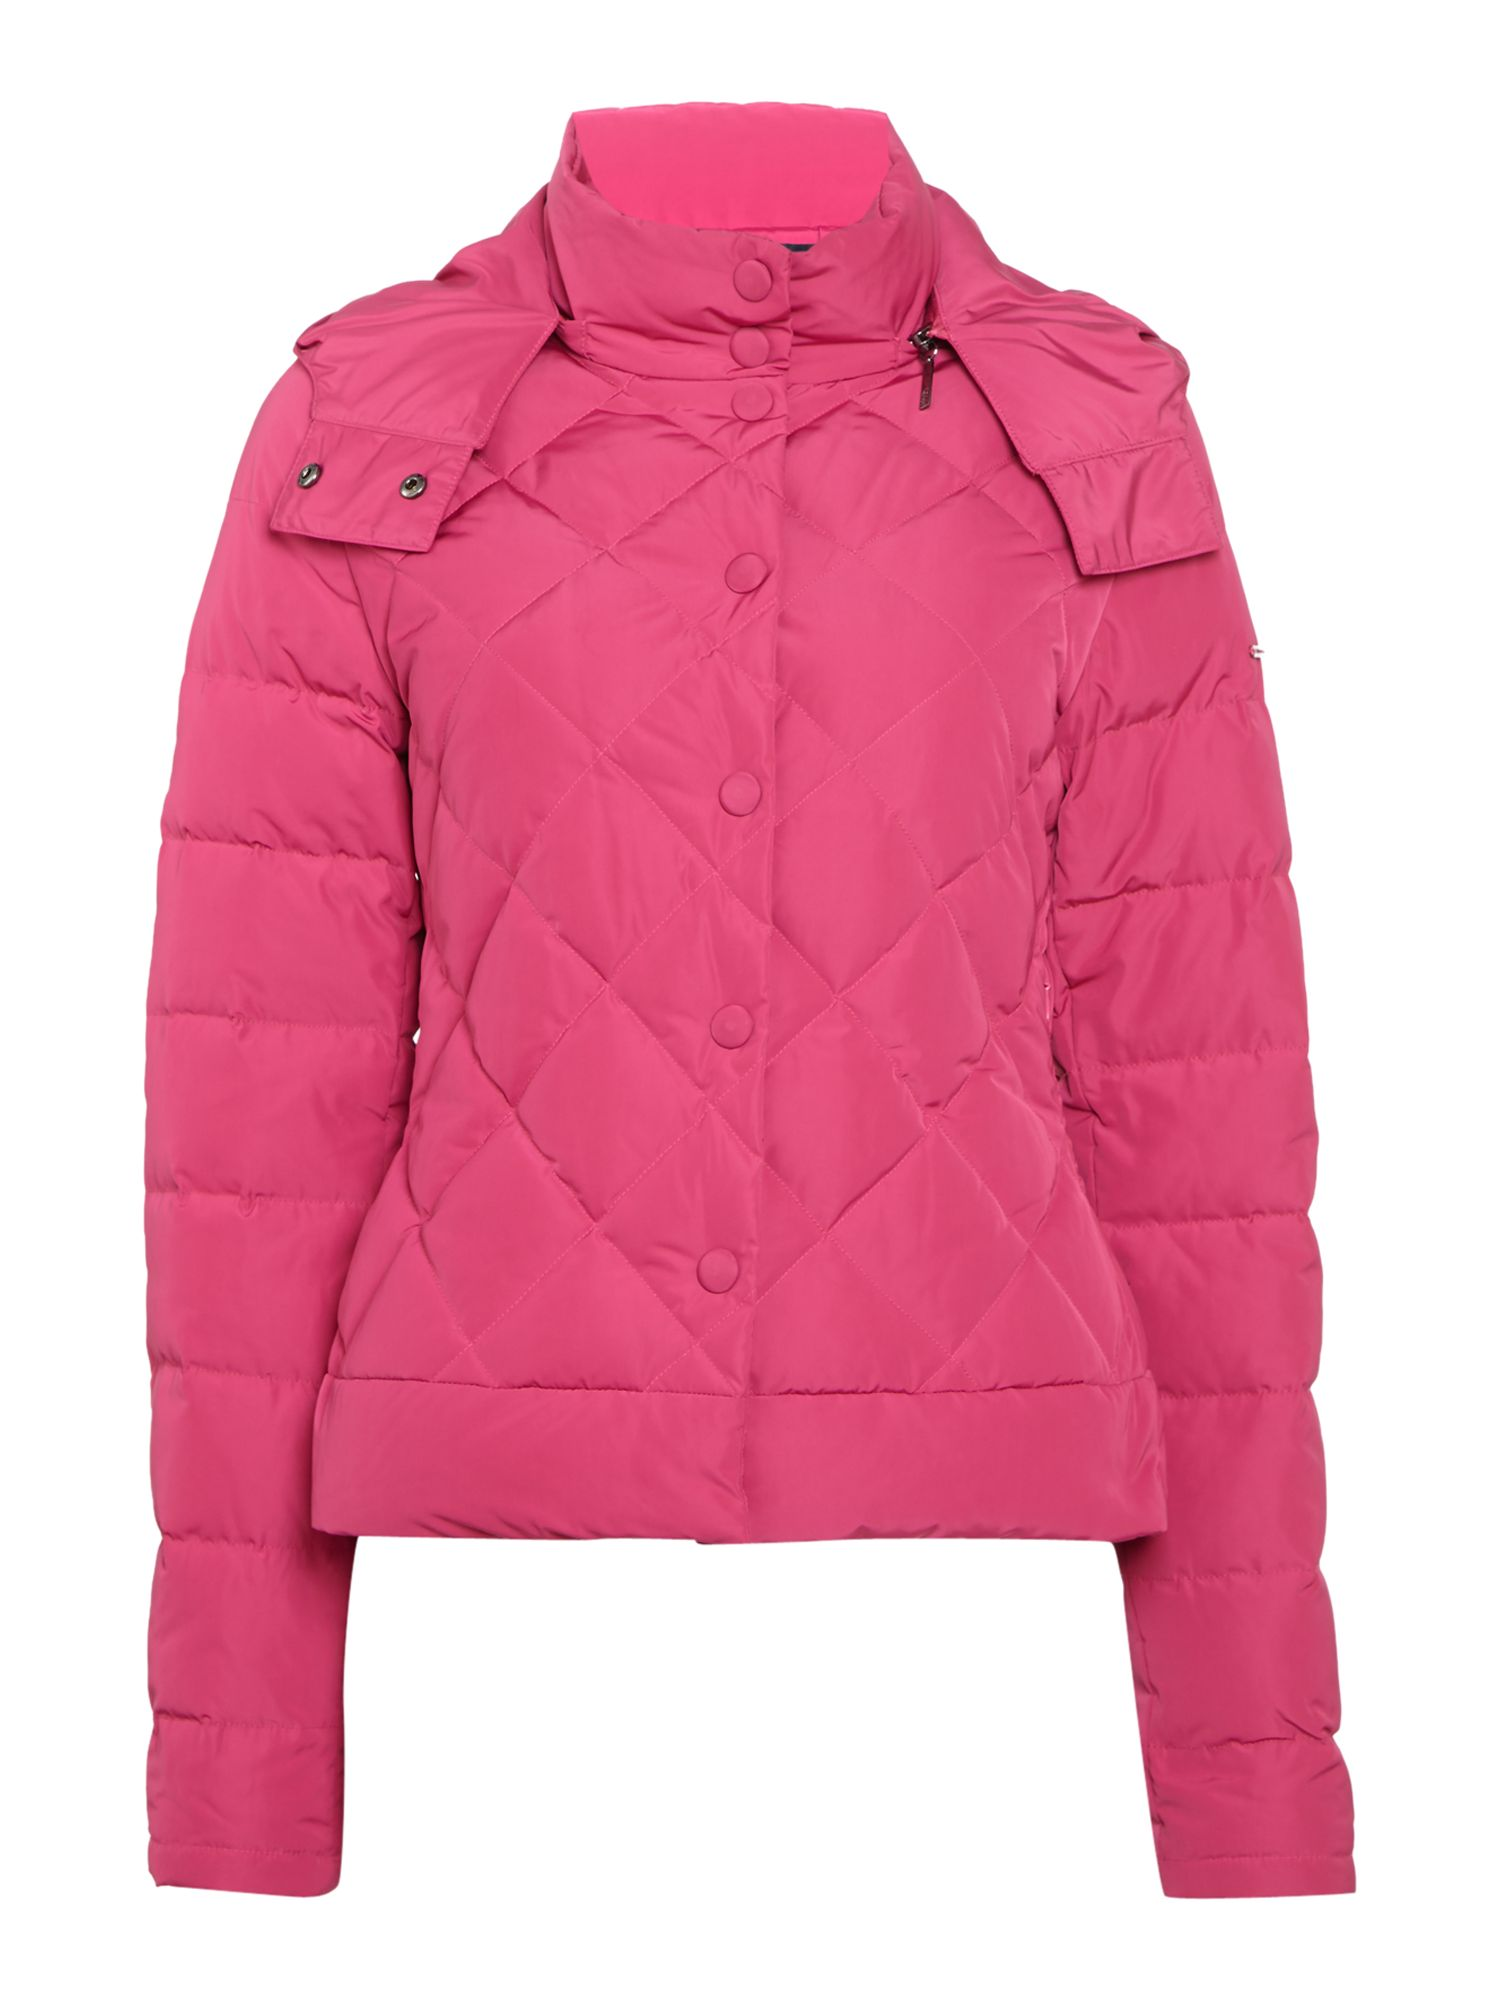 Armani Jeans Quilted Short Padded Jacket in Fuxia, Pink